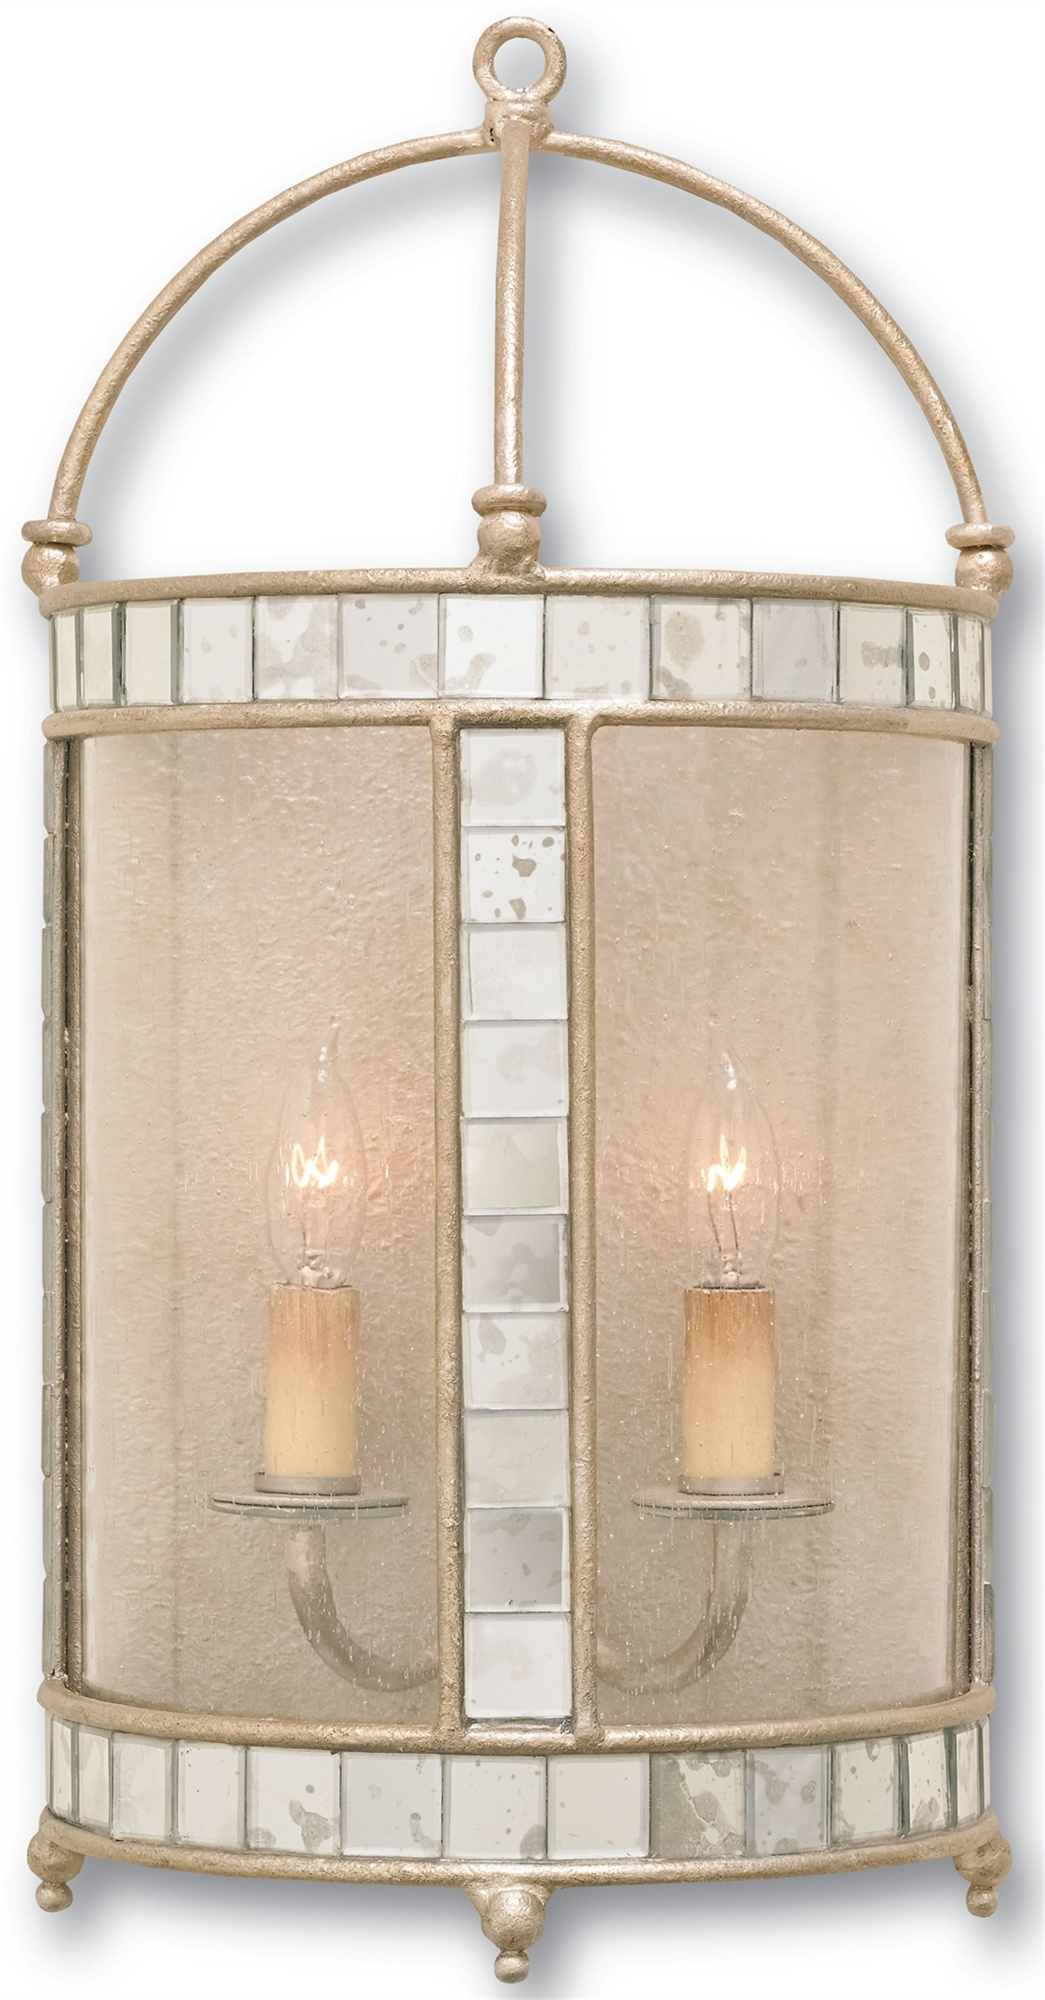 Currey company 5032 corsica wall sconce in harlow silver leaf general information arubaitofo Image collections